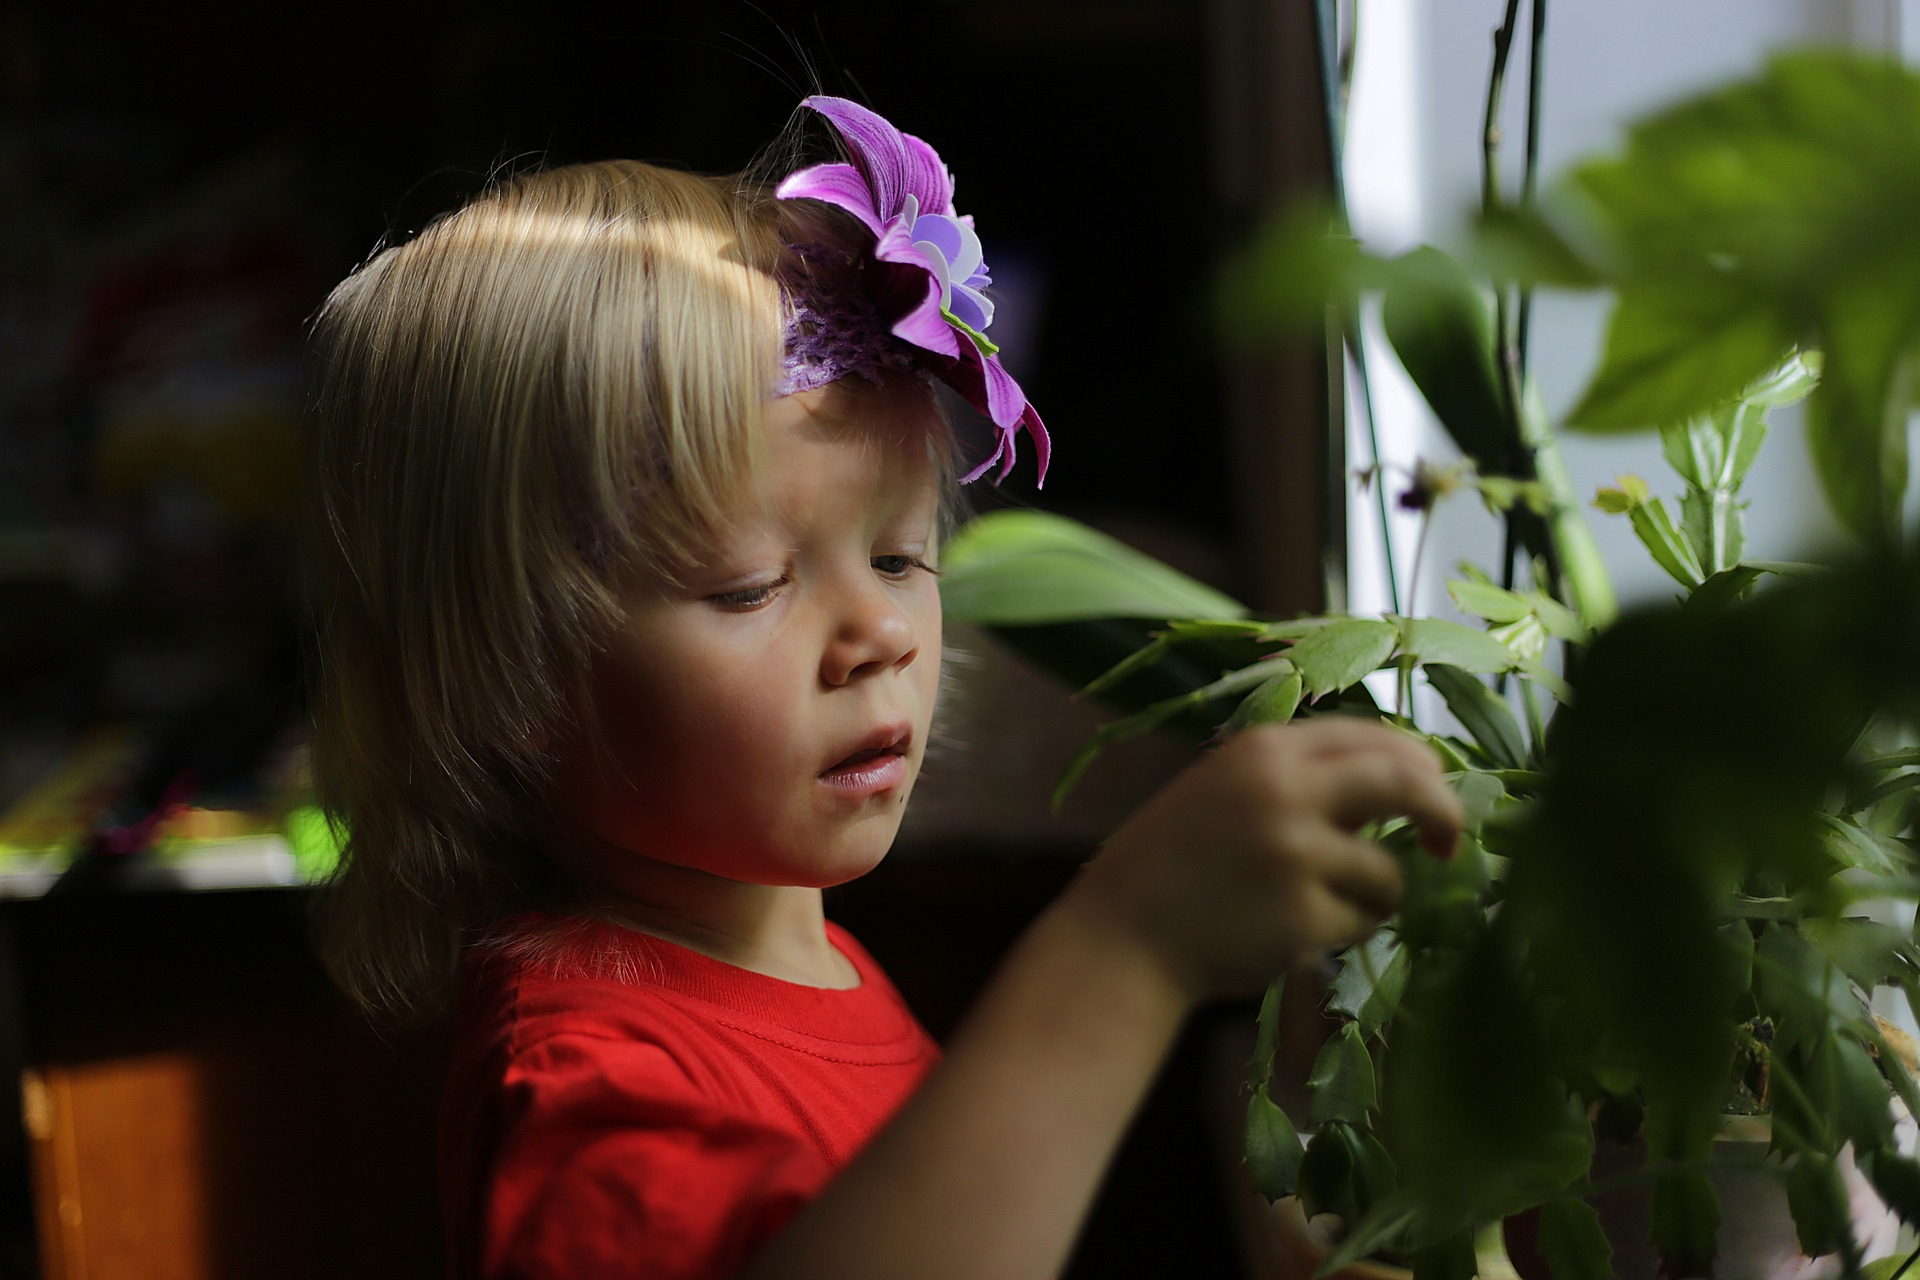 little boy with purple flower in his hair looking at plants